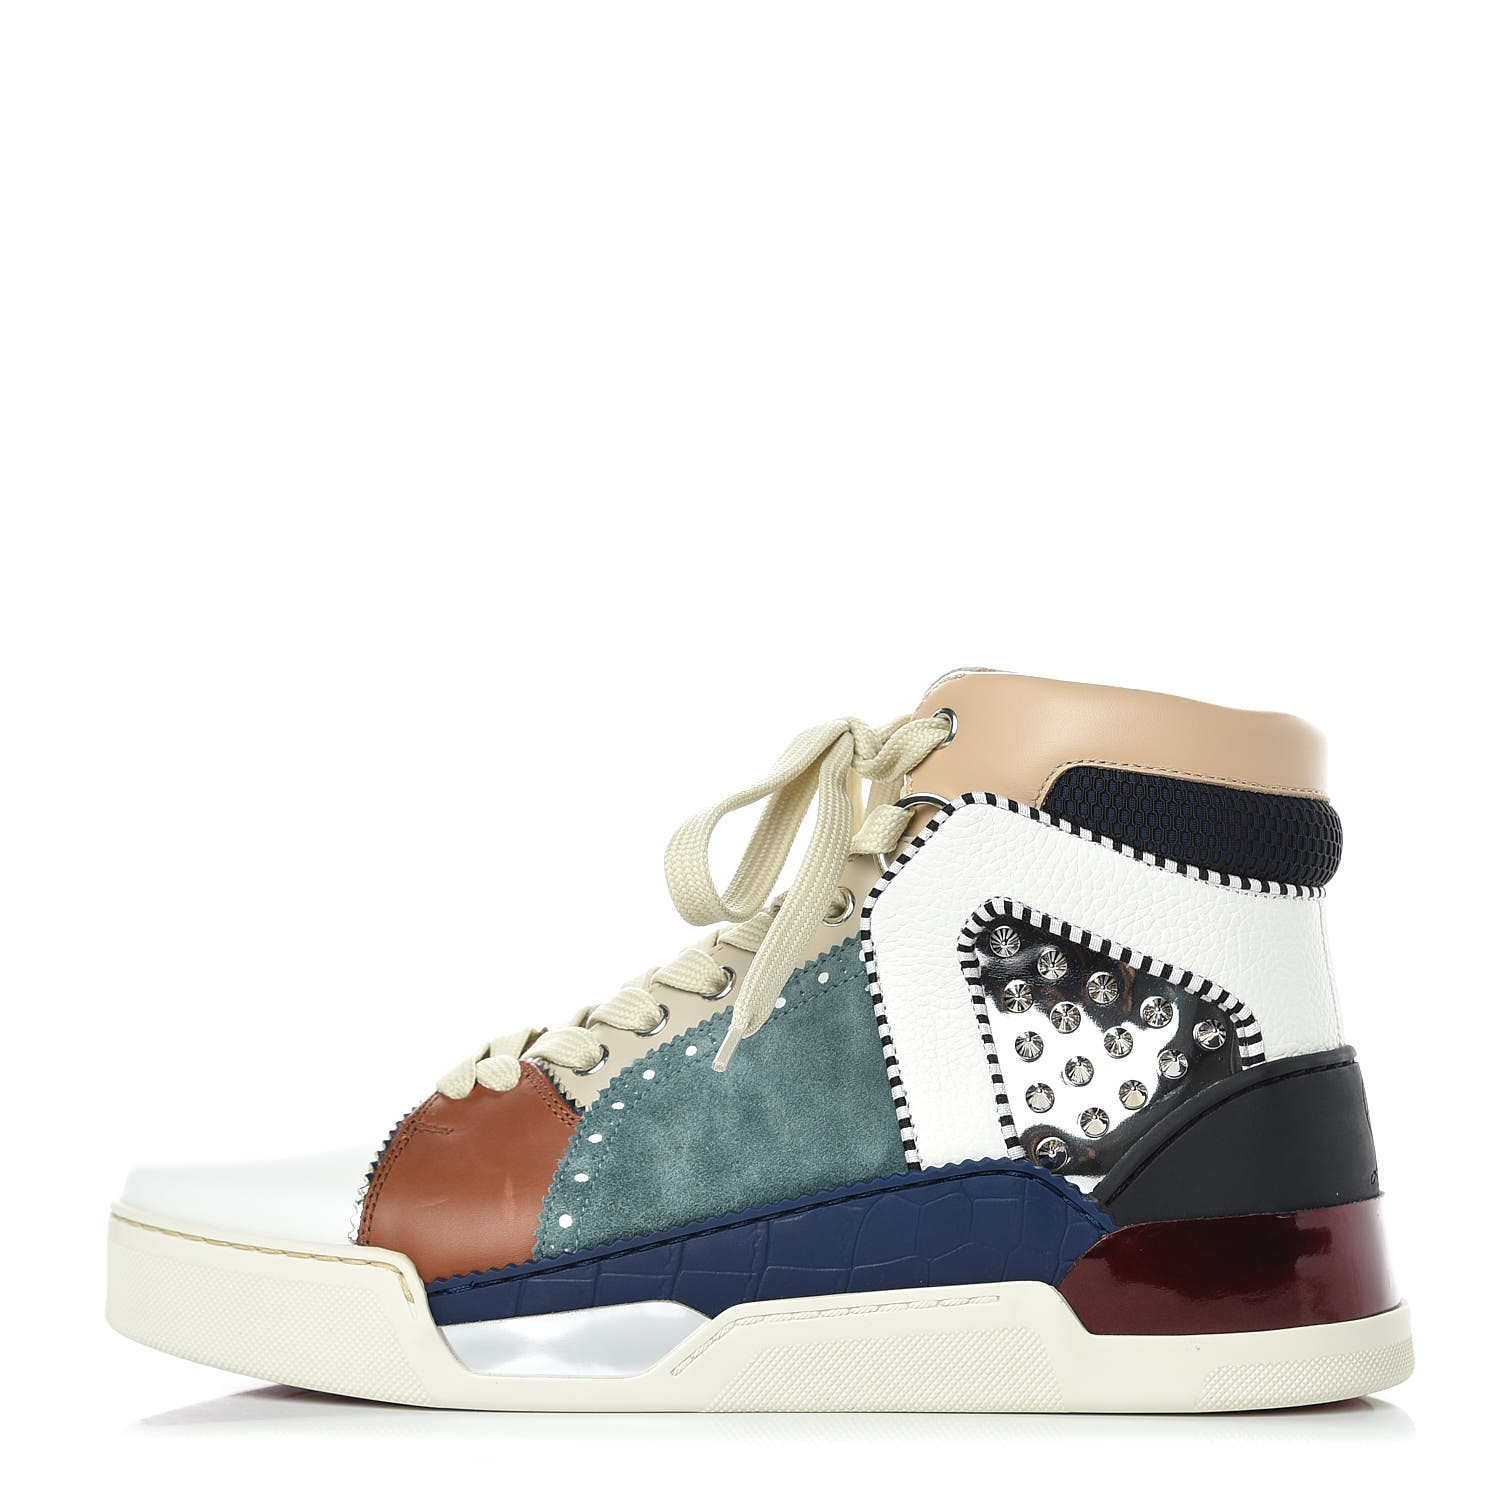 pretty nice 96e0f f60f9 CHRISTIAN LOUBOUTIN Calfskin Patent Veau Velours Spikes Mens Loubikick Flat  Sneakers 41 Multicolor